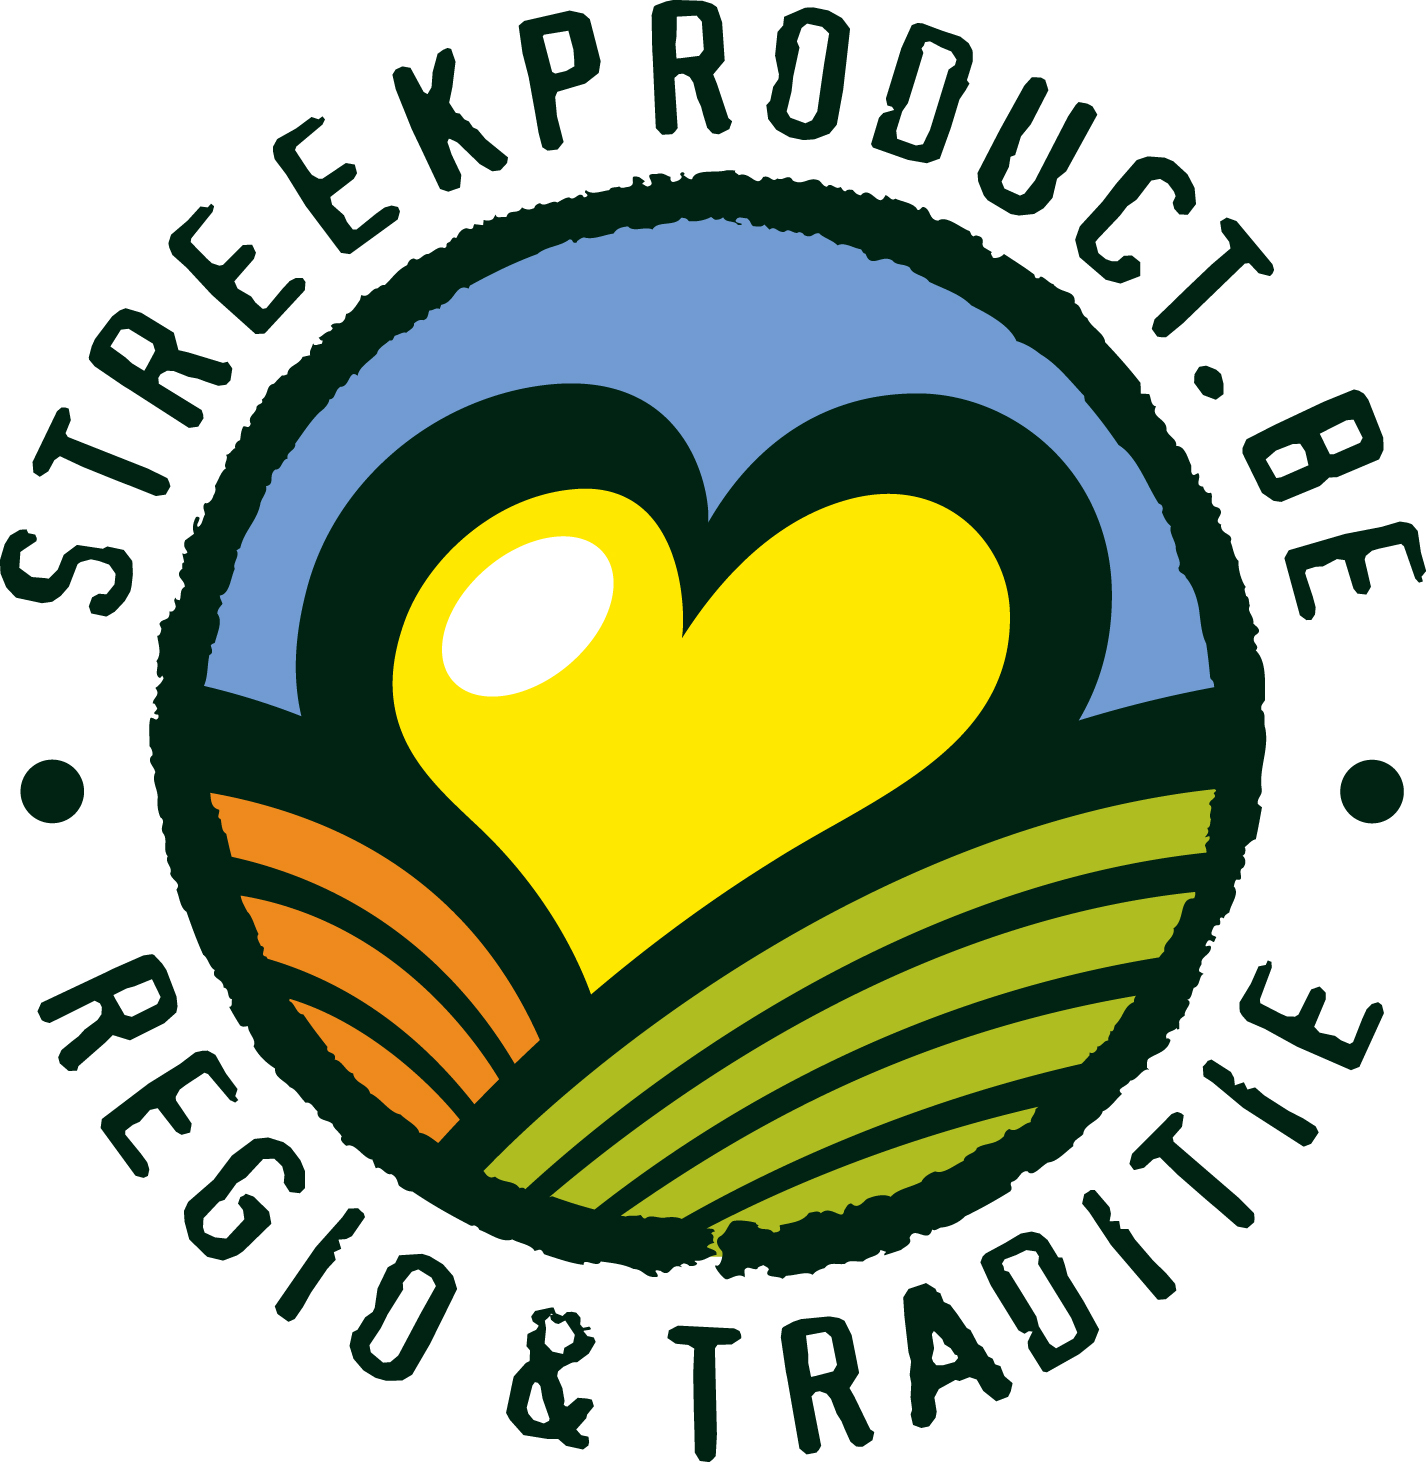 Image result for streekproduct.be logo